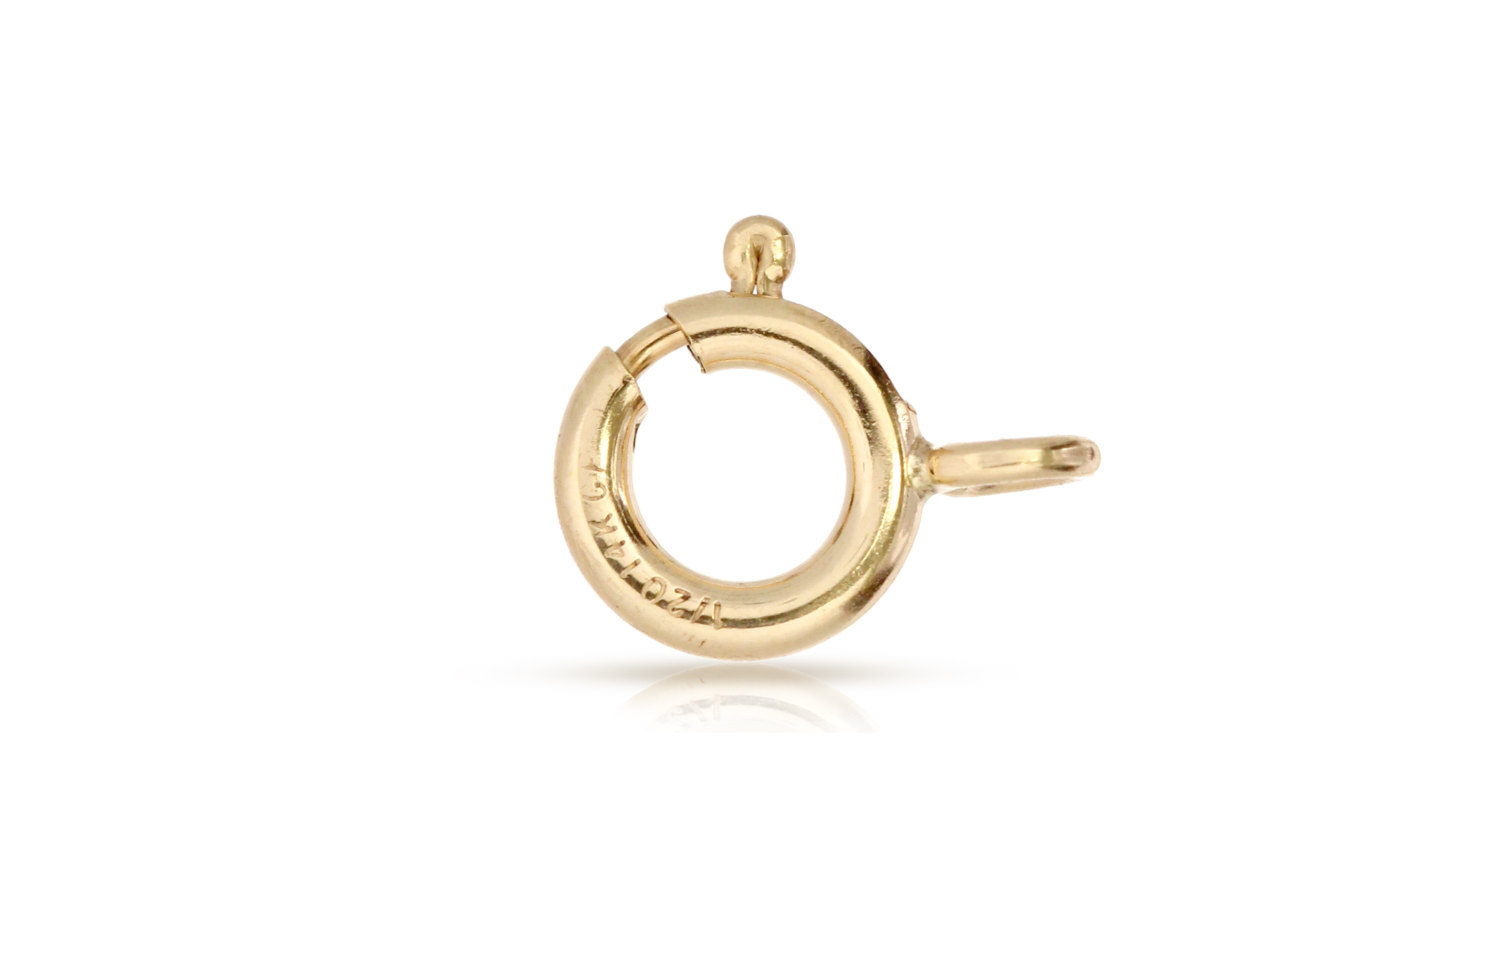 Primary image for Clasp, Spring Ring With closed Ring,14Kt Gold Filled, 6mm, 500pcs (3063)/25